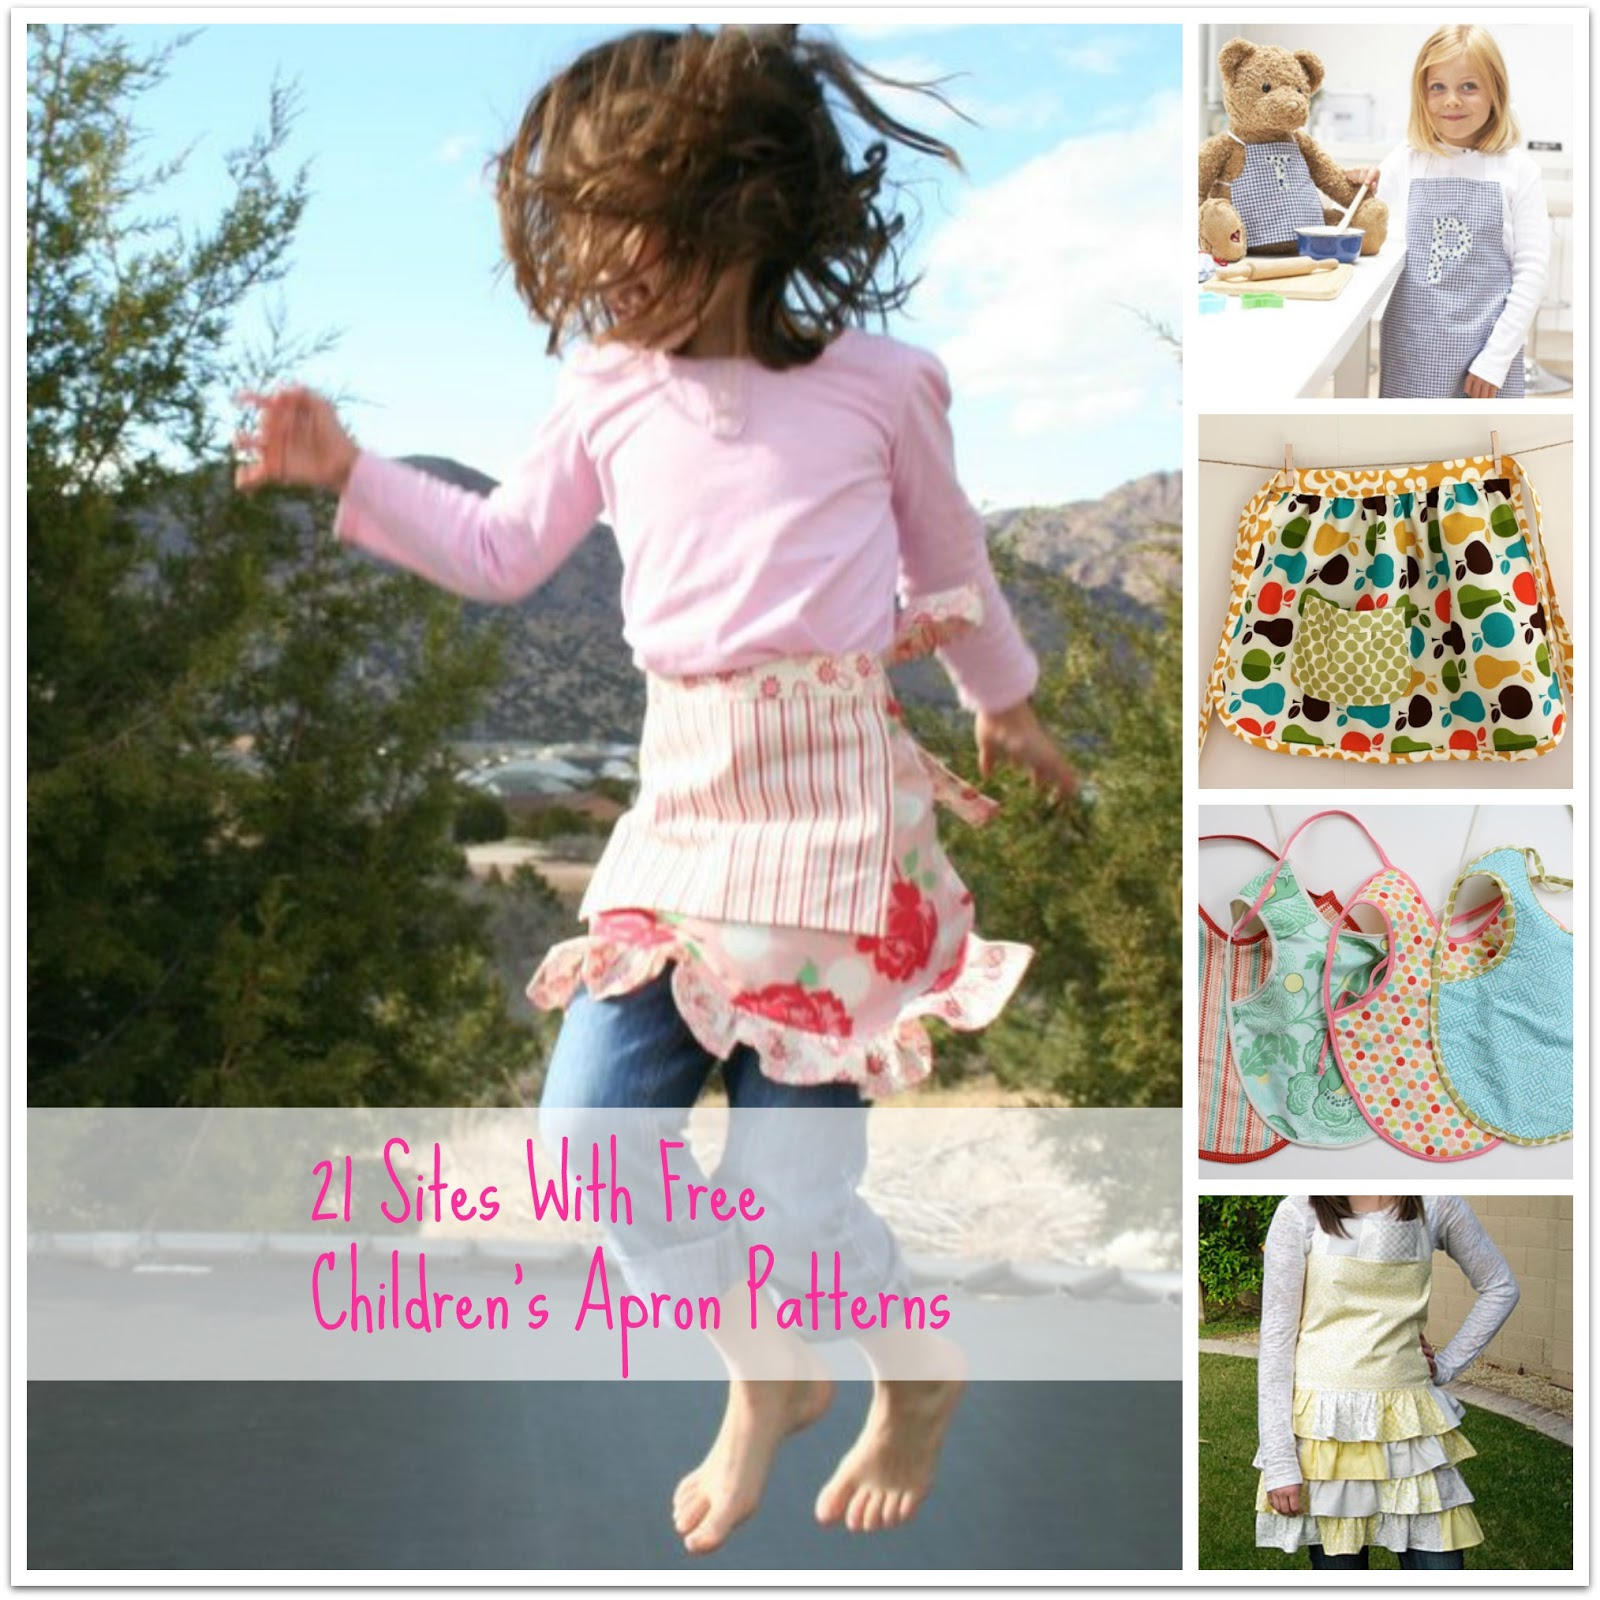 21 Sites with Free Children's Apron Patterns